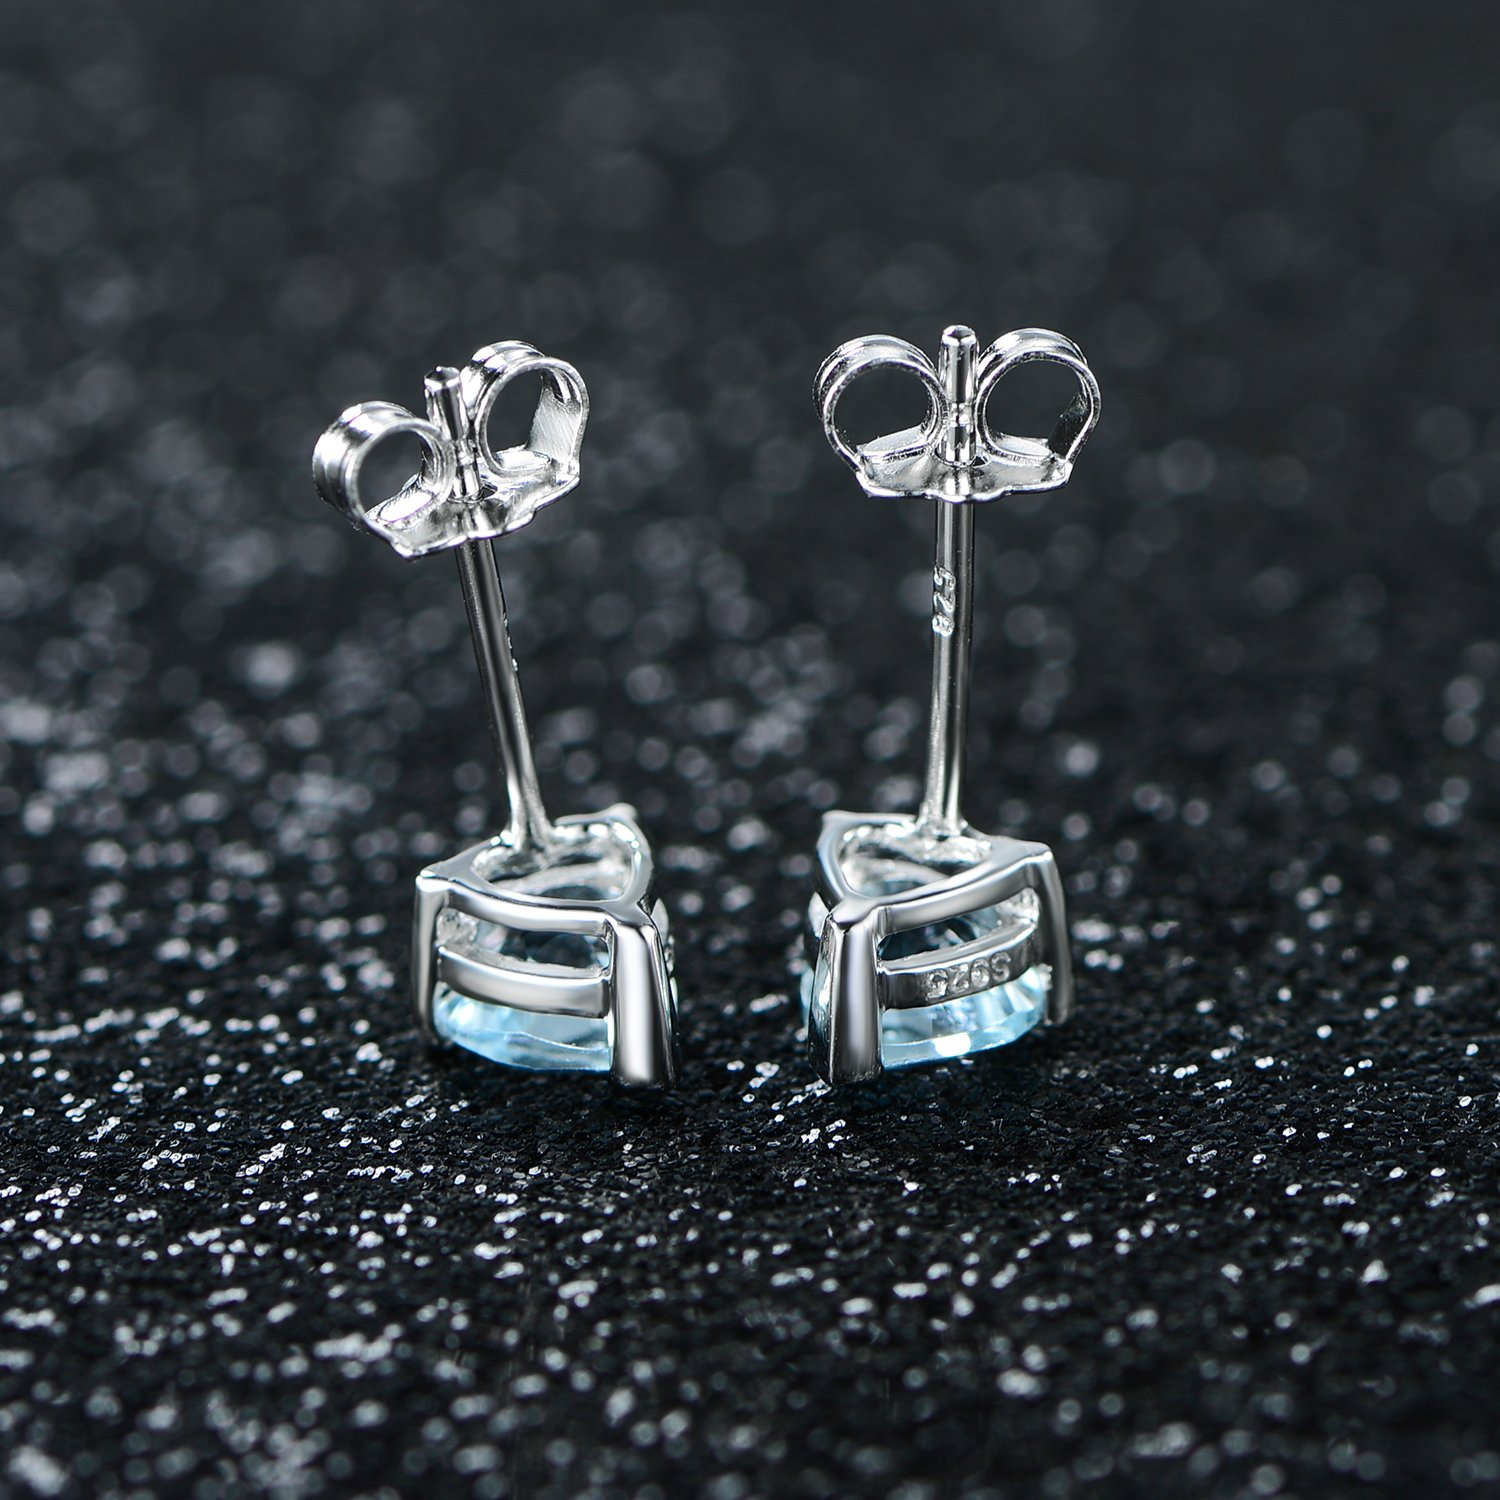 JiangXin Heart Shape Natural Sky Blue Topaz Gemstone White Gold Plated 925 Sterling Silver Stud Earring for Girls Birthday Gift